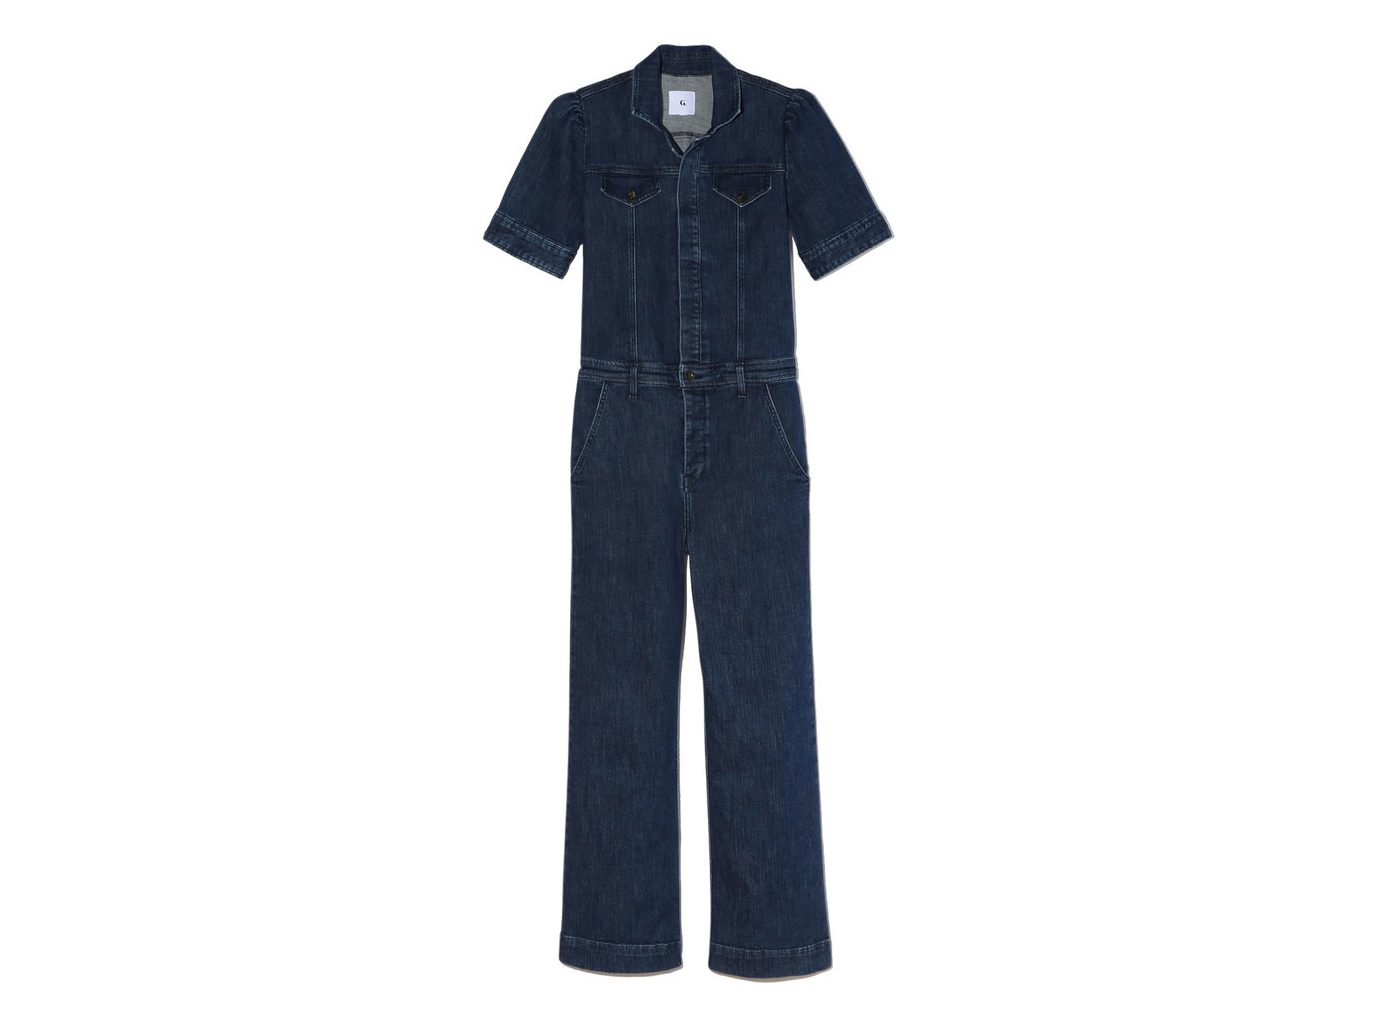 G. Label Katie Denim Jumpsuit Best Jumpsuits for summer